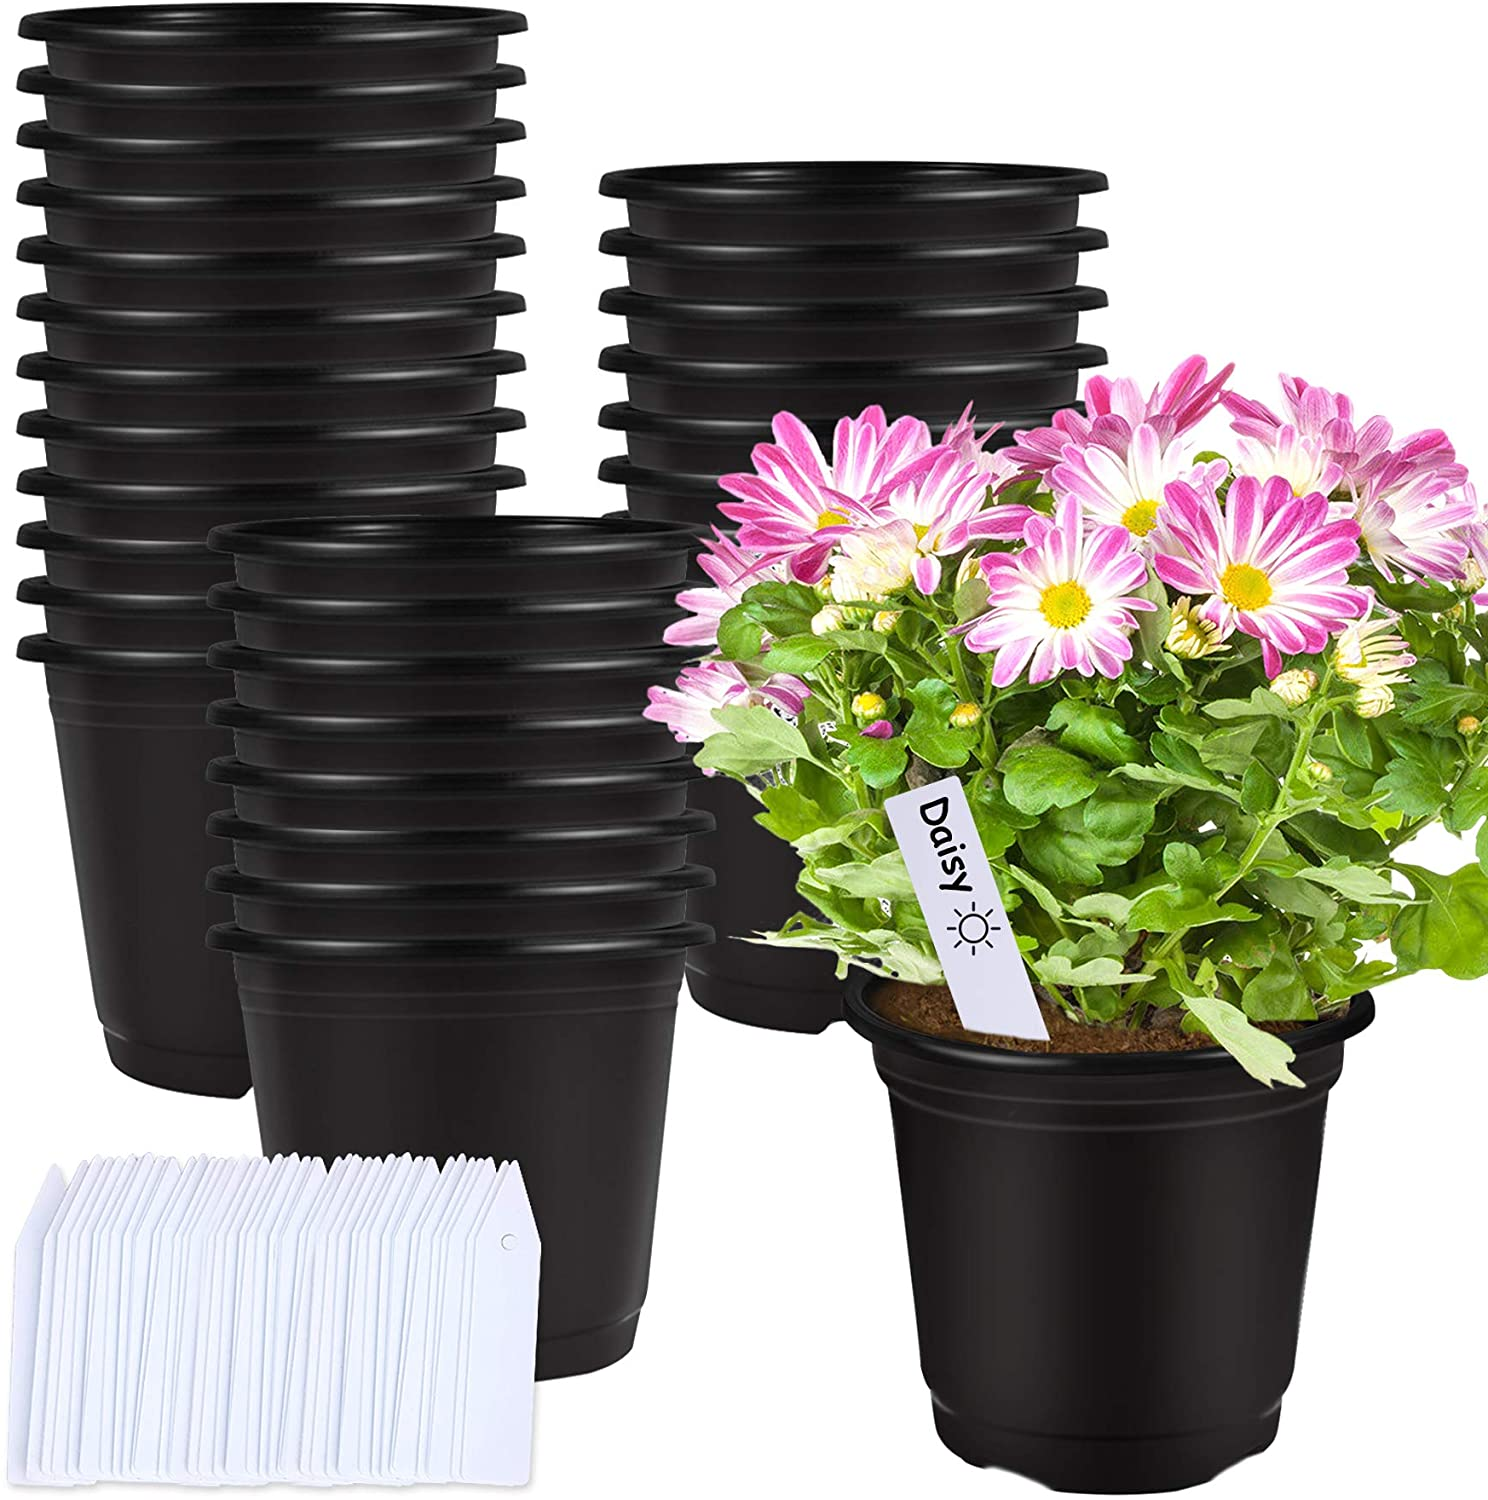 50 Pcs 0.5 Gallon Black Plastic Plant Nursery Pots 6 Inches Seed Starting Pots Containers with 50 Labels